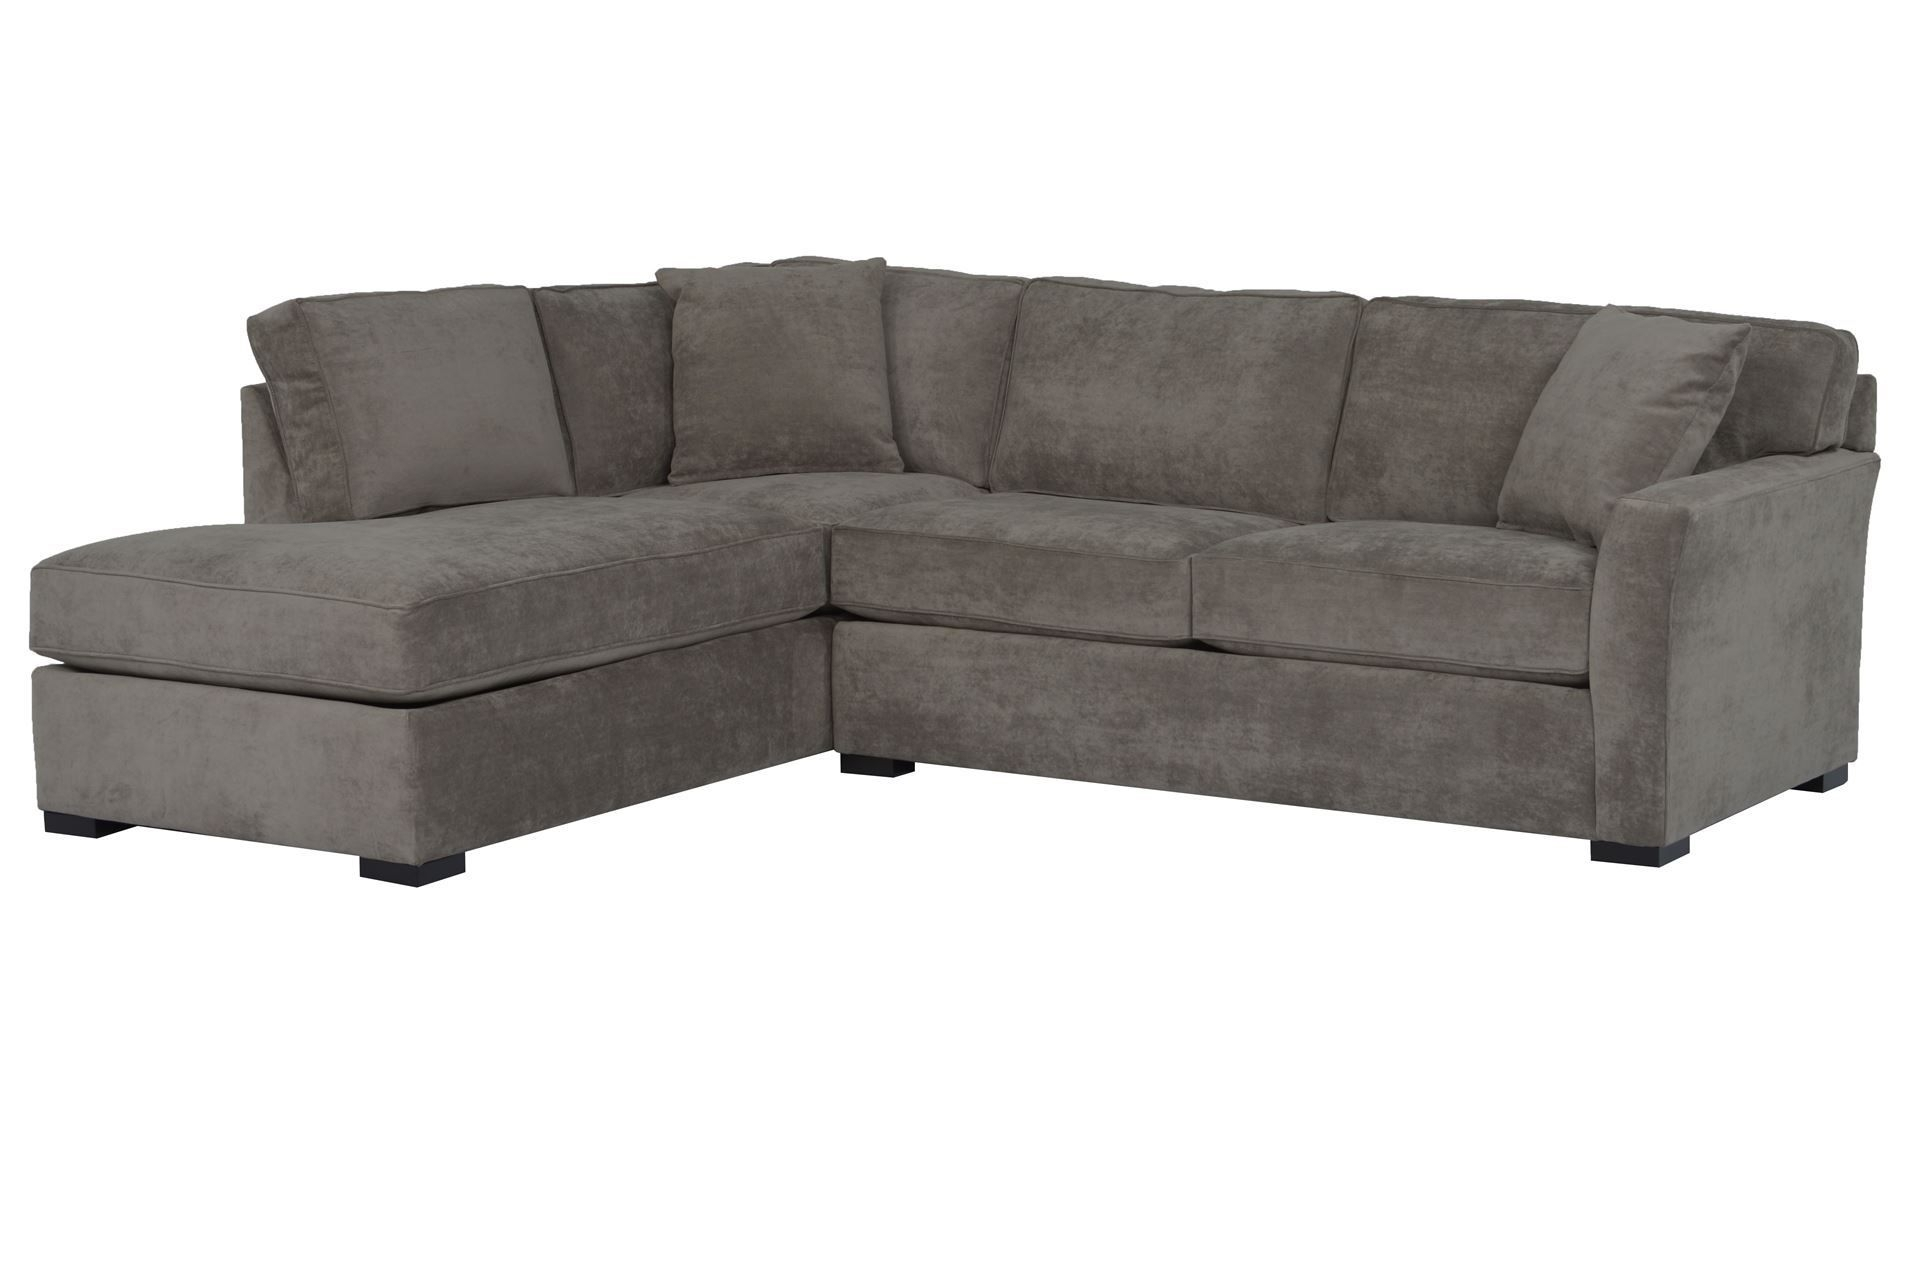 Aspen 2 Piece Sleeper Sectional W/laf Chaise | Living Room Intended For Aspen 2 Piece Sleeper Sectionals With Laf Chaise (View 3 of 25)